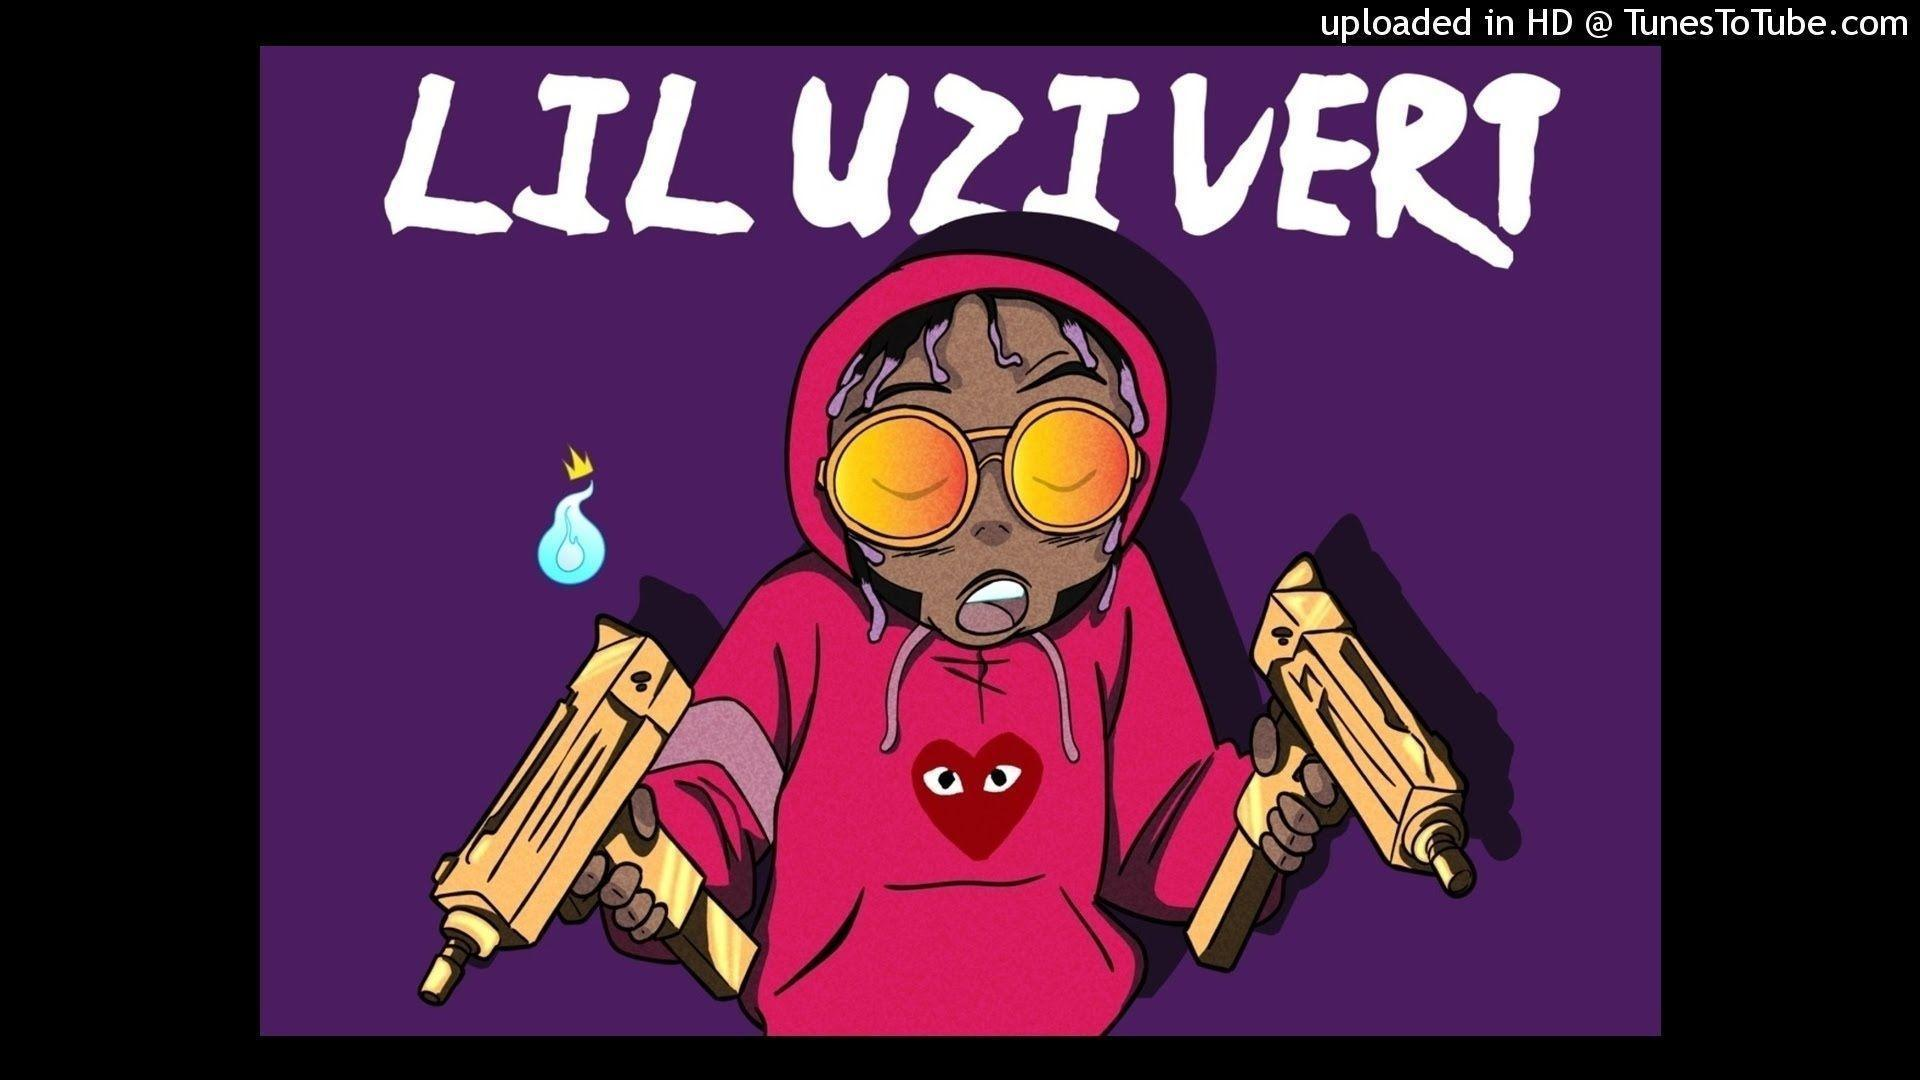 Supreme Lil Uzi Vert Wallpaper A collection of the top 36 narto as lil uzi vert wallpapers and backgrounds available for download for free. supreme lil uzi vert wallpaper